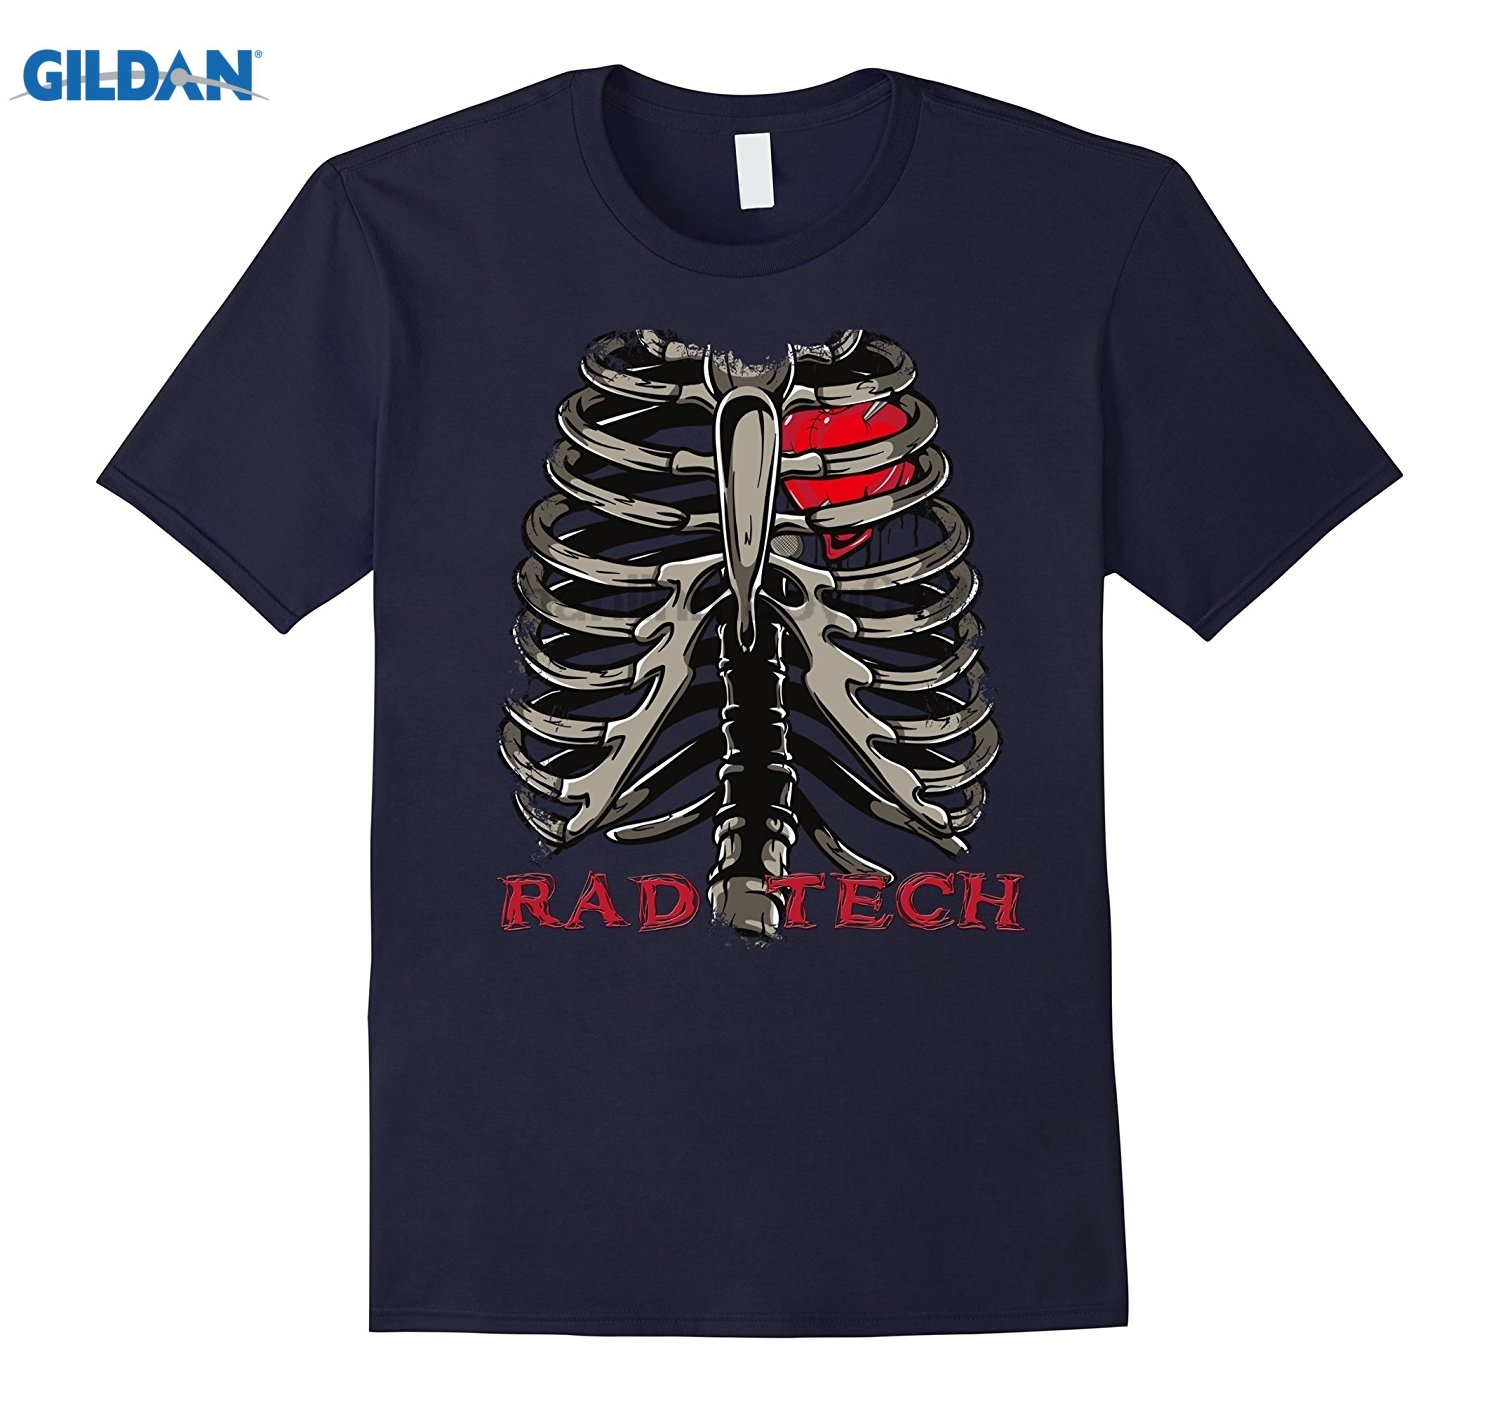 GILDAN Rad Tech T-Shirt, X Ray Radiology Xray Technician Tee Gift sunglasses women T-shirt